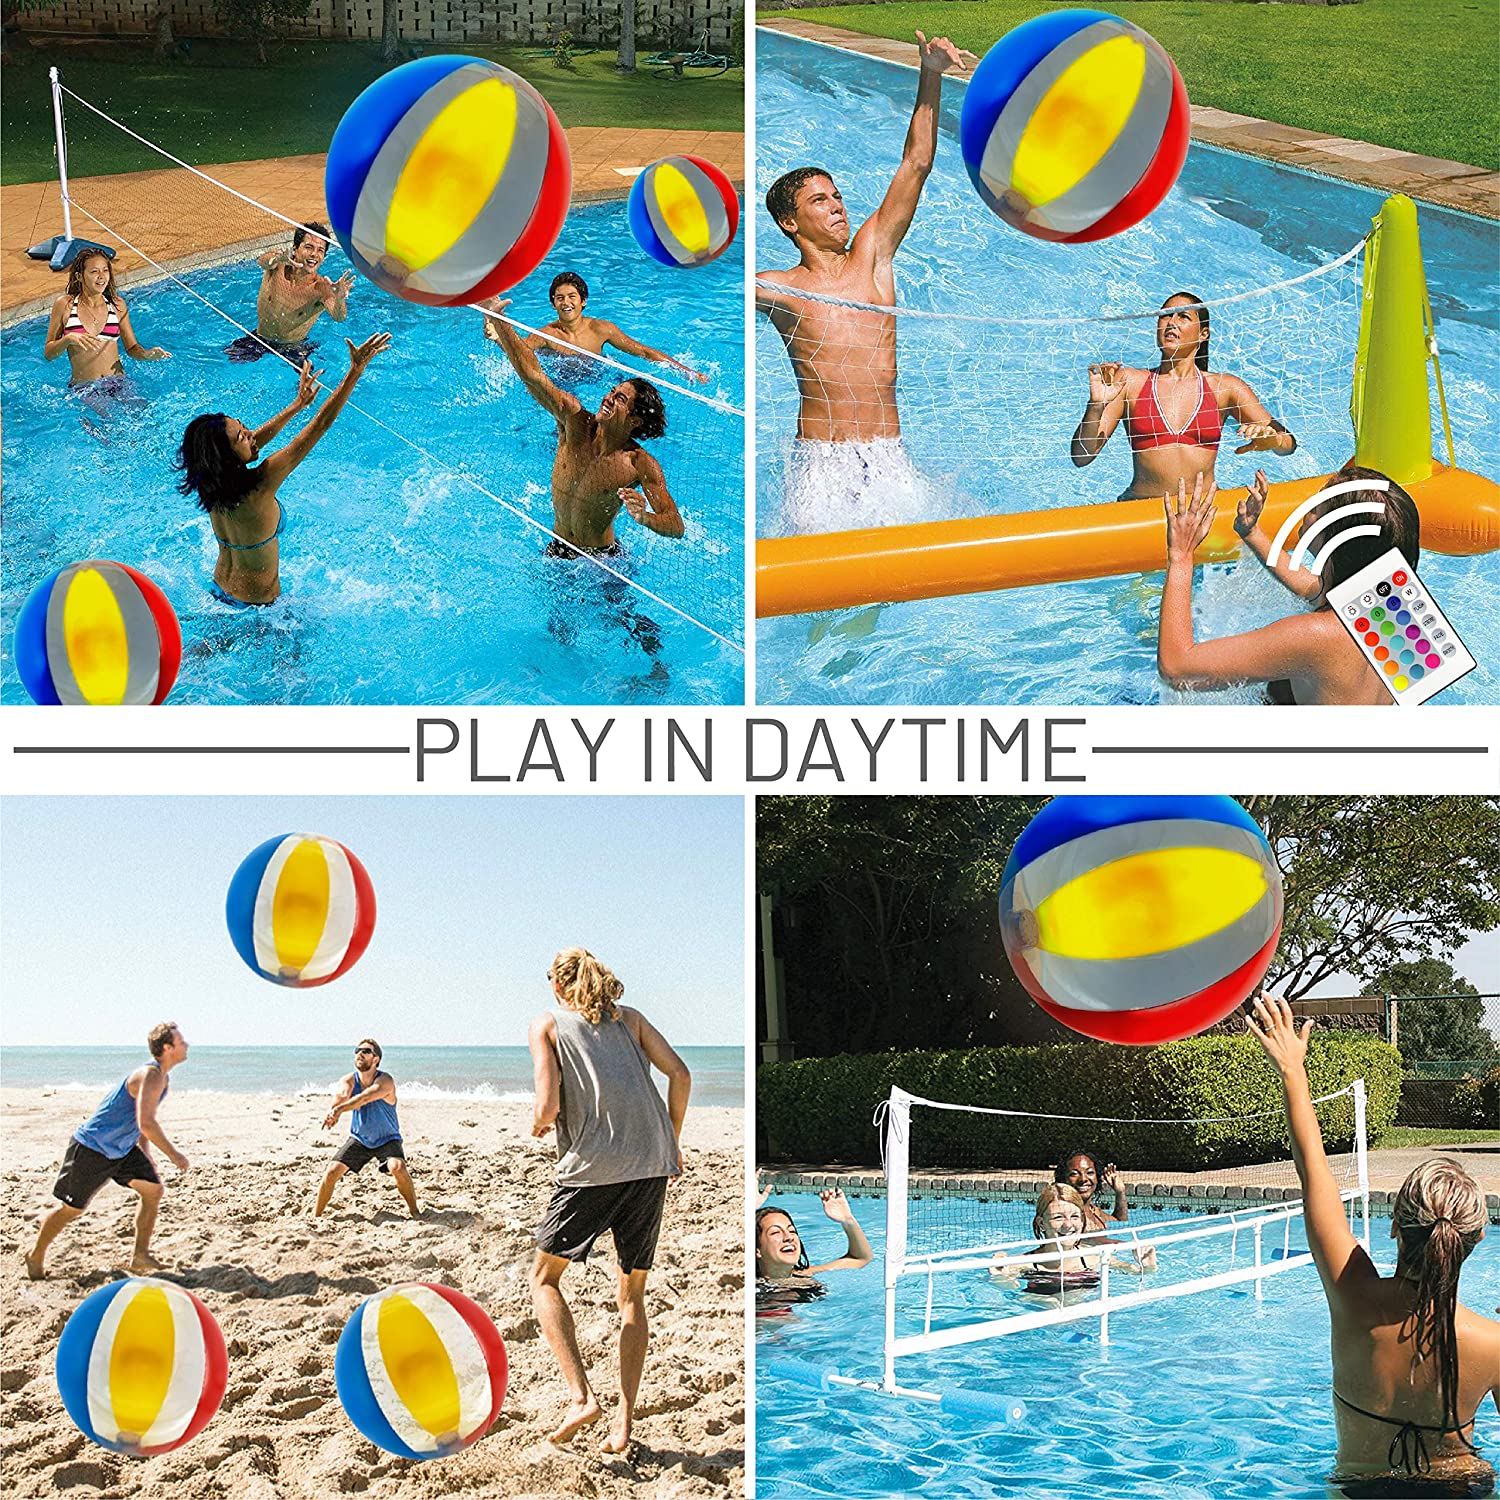 Pool Games for Adults Kids Glow in The Dark Home Patio Garden Swimming Party Decorations 16 Light Colors 4 Light Modes Glow Ball Funny Monkeys Pool Toy 18 Inflatable Light up Beach Ball